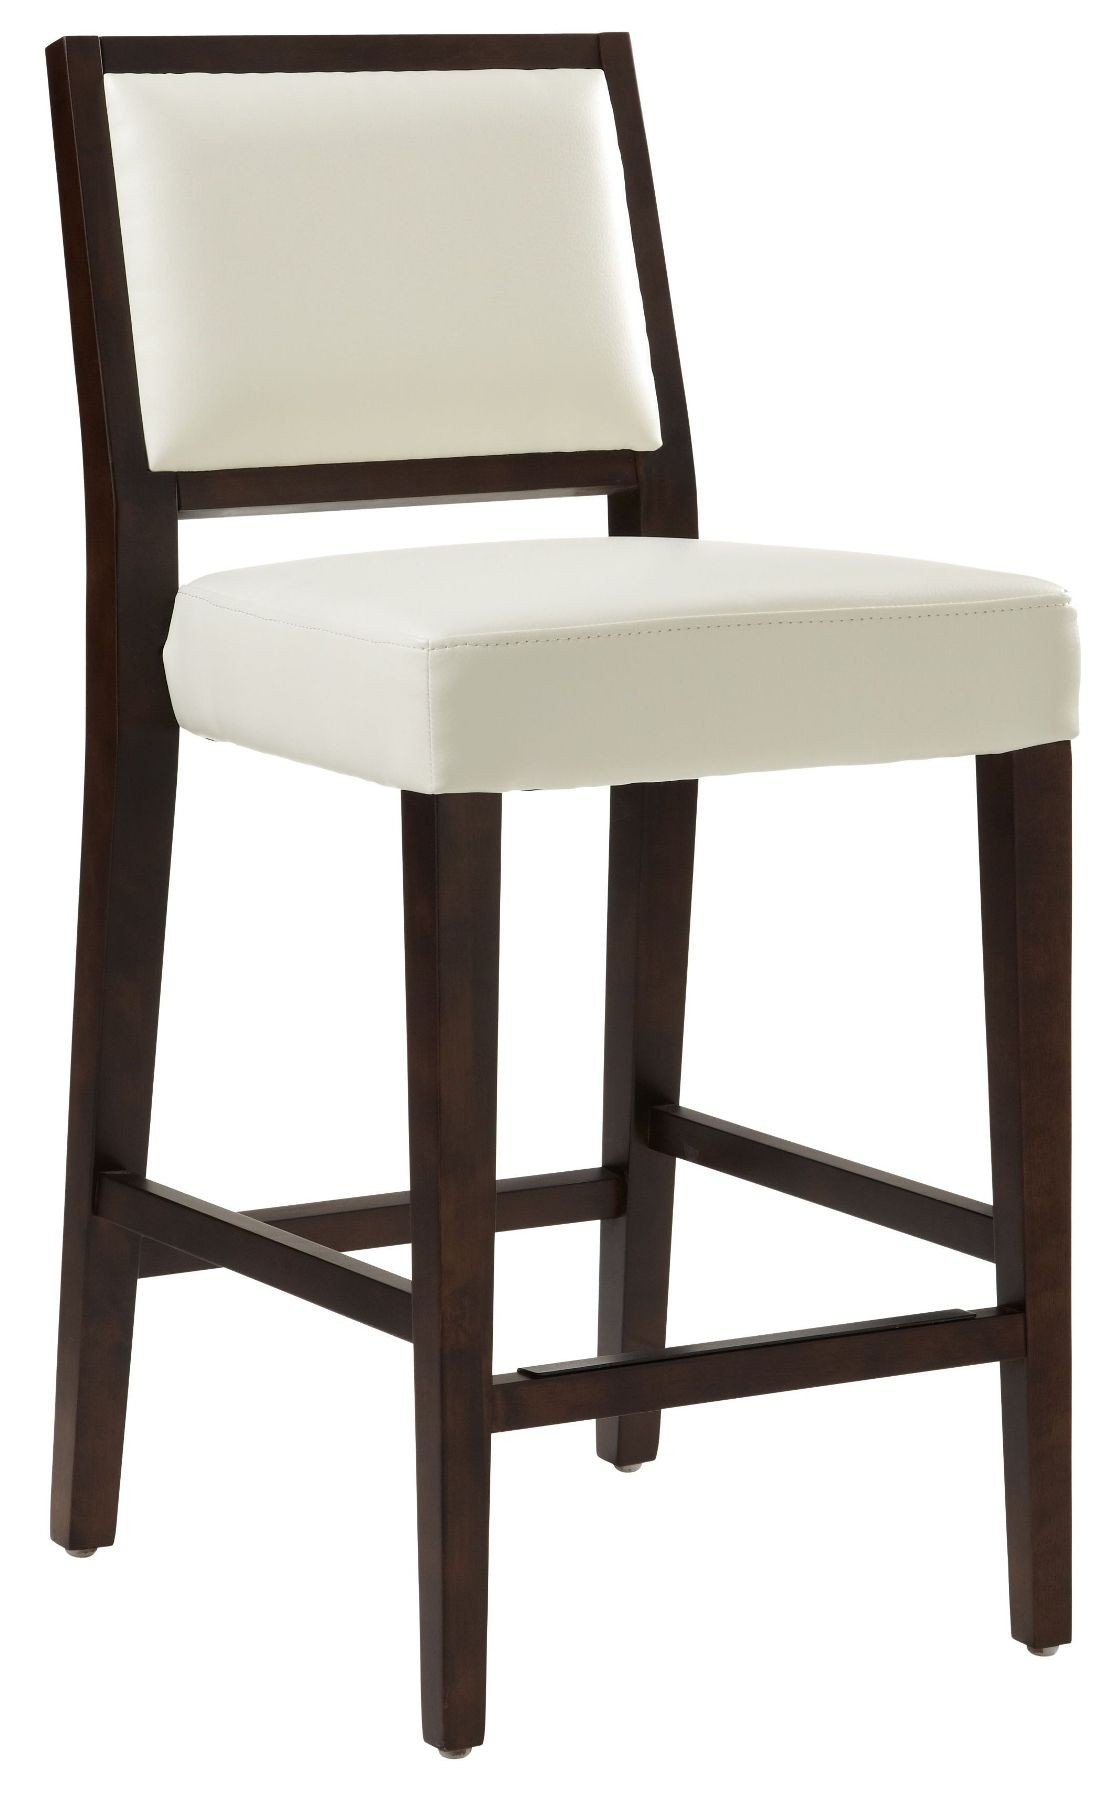 Citizen Ivory Counter Stool From Sunpan 39056 Coleman